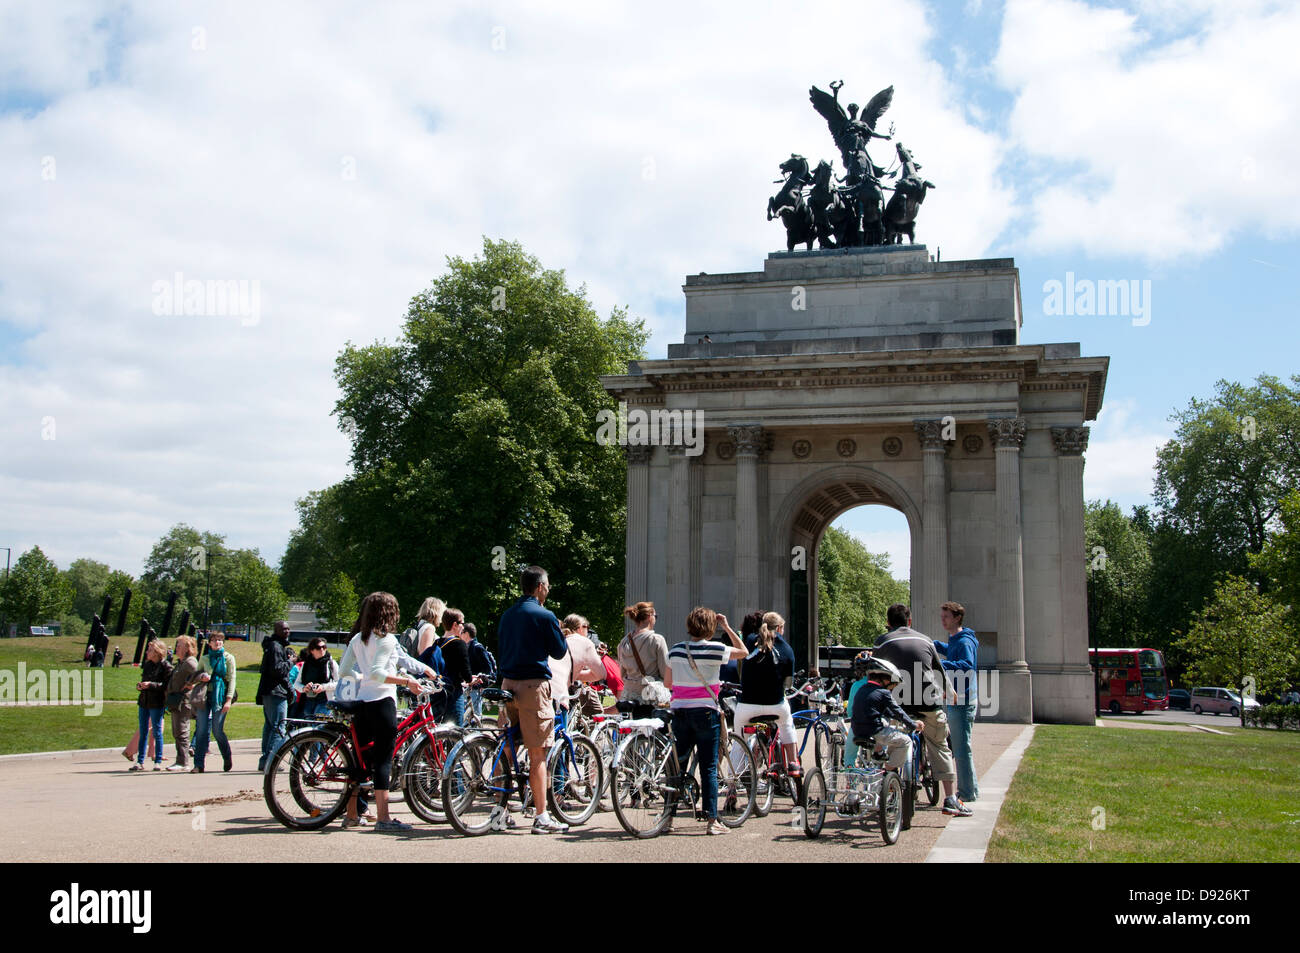 Bike tour of London sights, Hyde Park corner - Stock Image